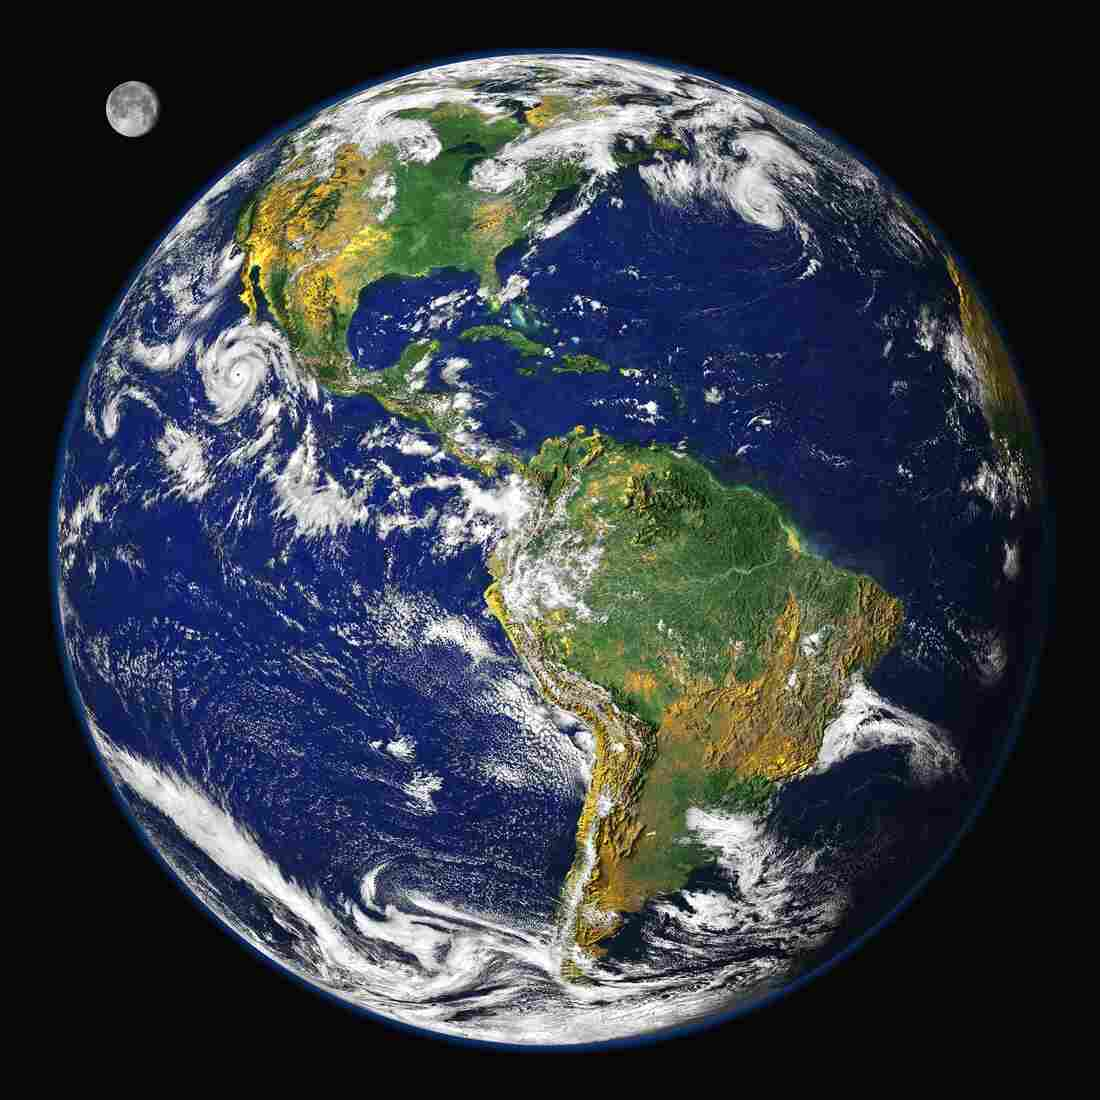 If you know the signs to look for, it becomes clear that the Earth itself is breathing.